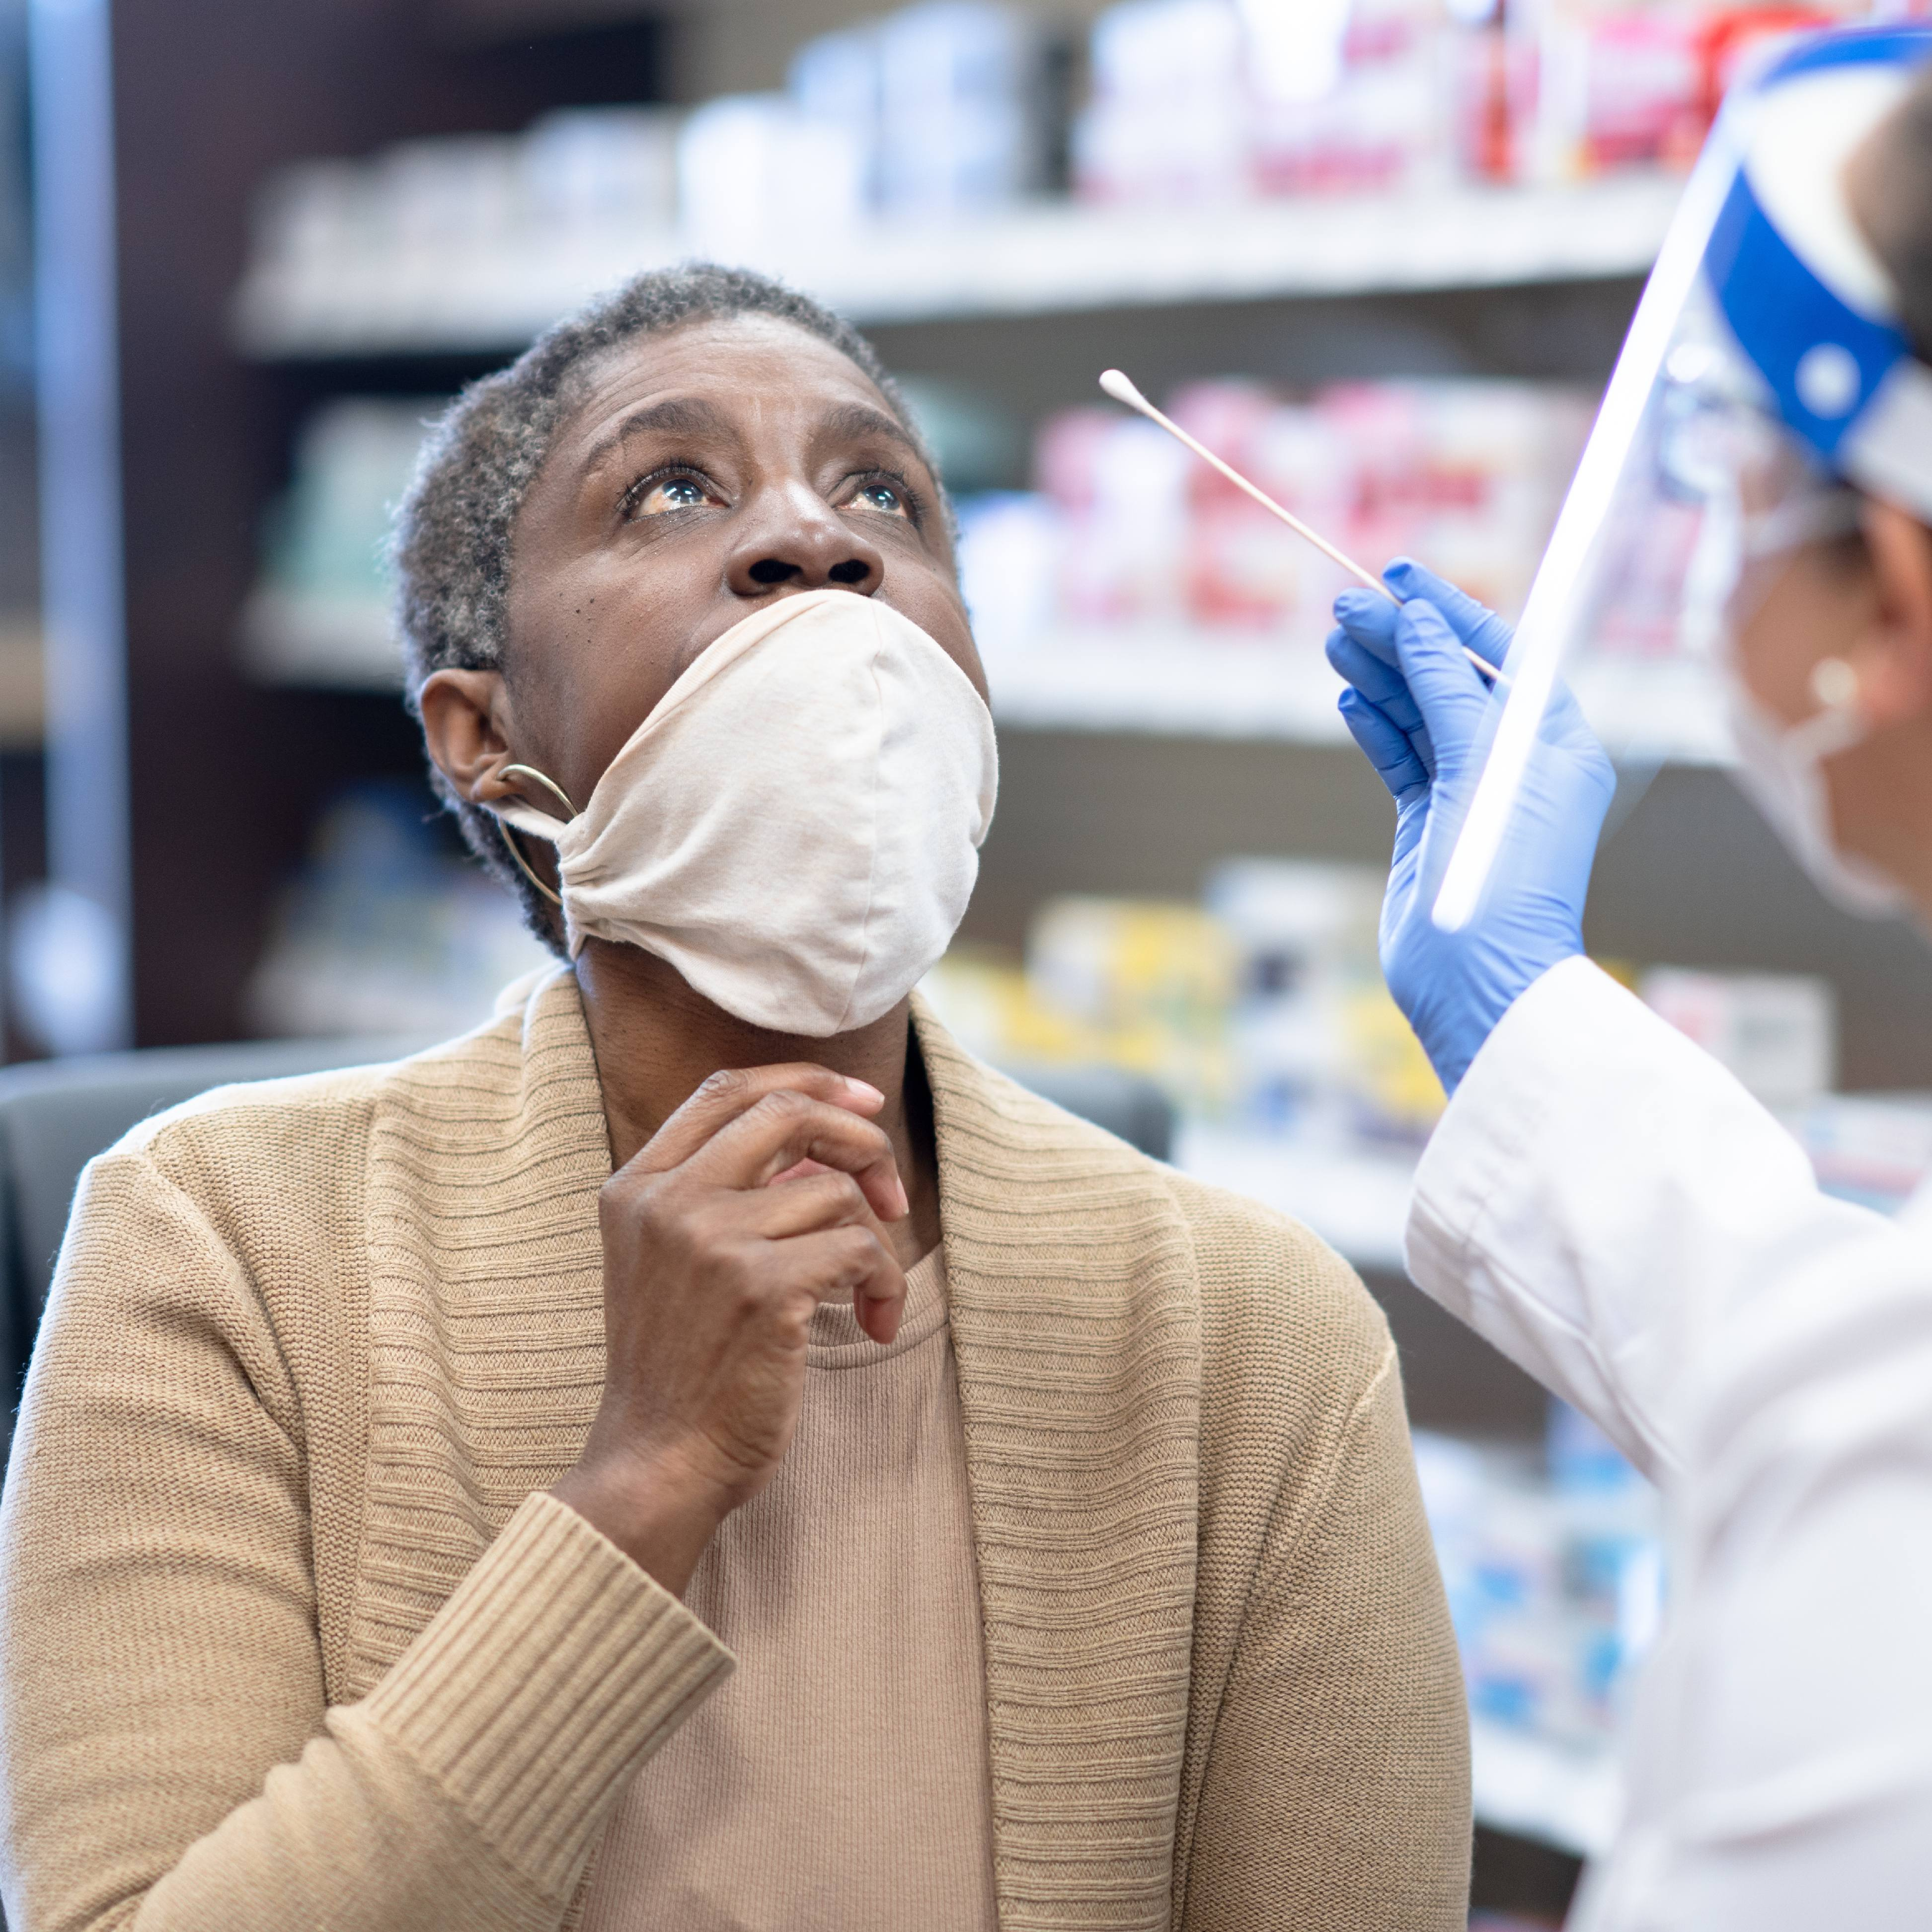 a middle-aged Black woman pulling down her mask to be swabbed and tested for COVID-19 by a pharmacist wearing PPE